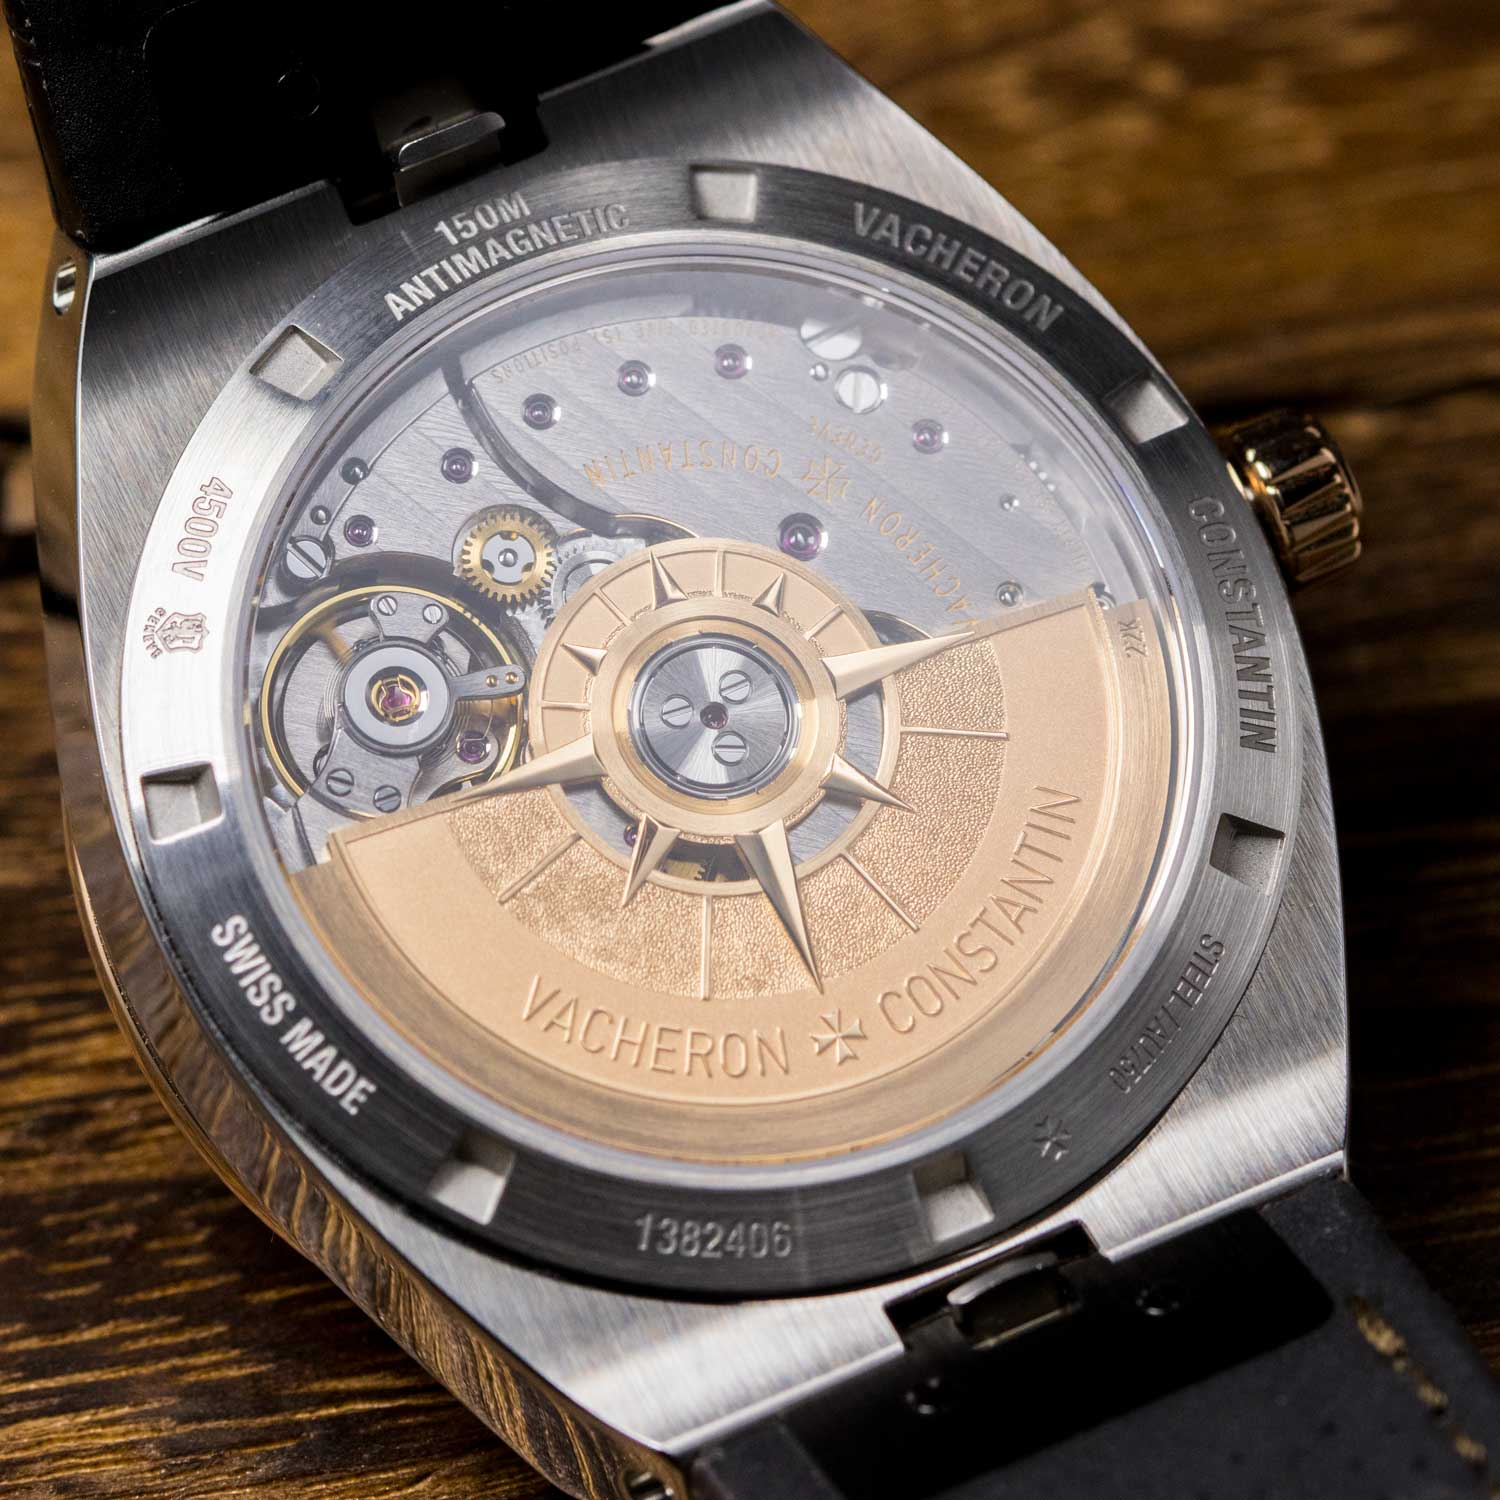 Caseback view of the Manufacture Caliber 5100